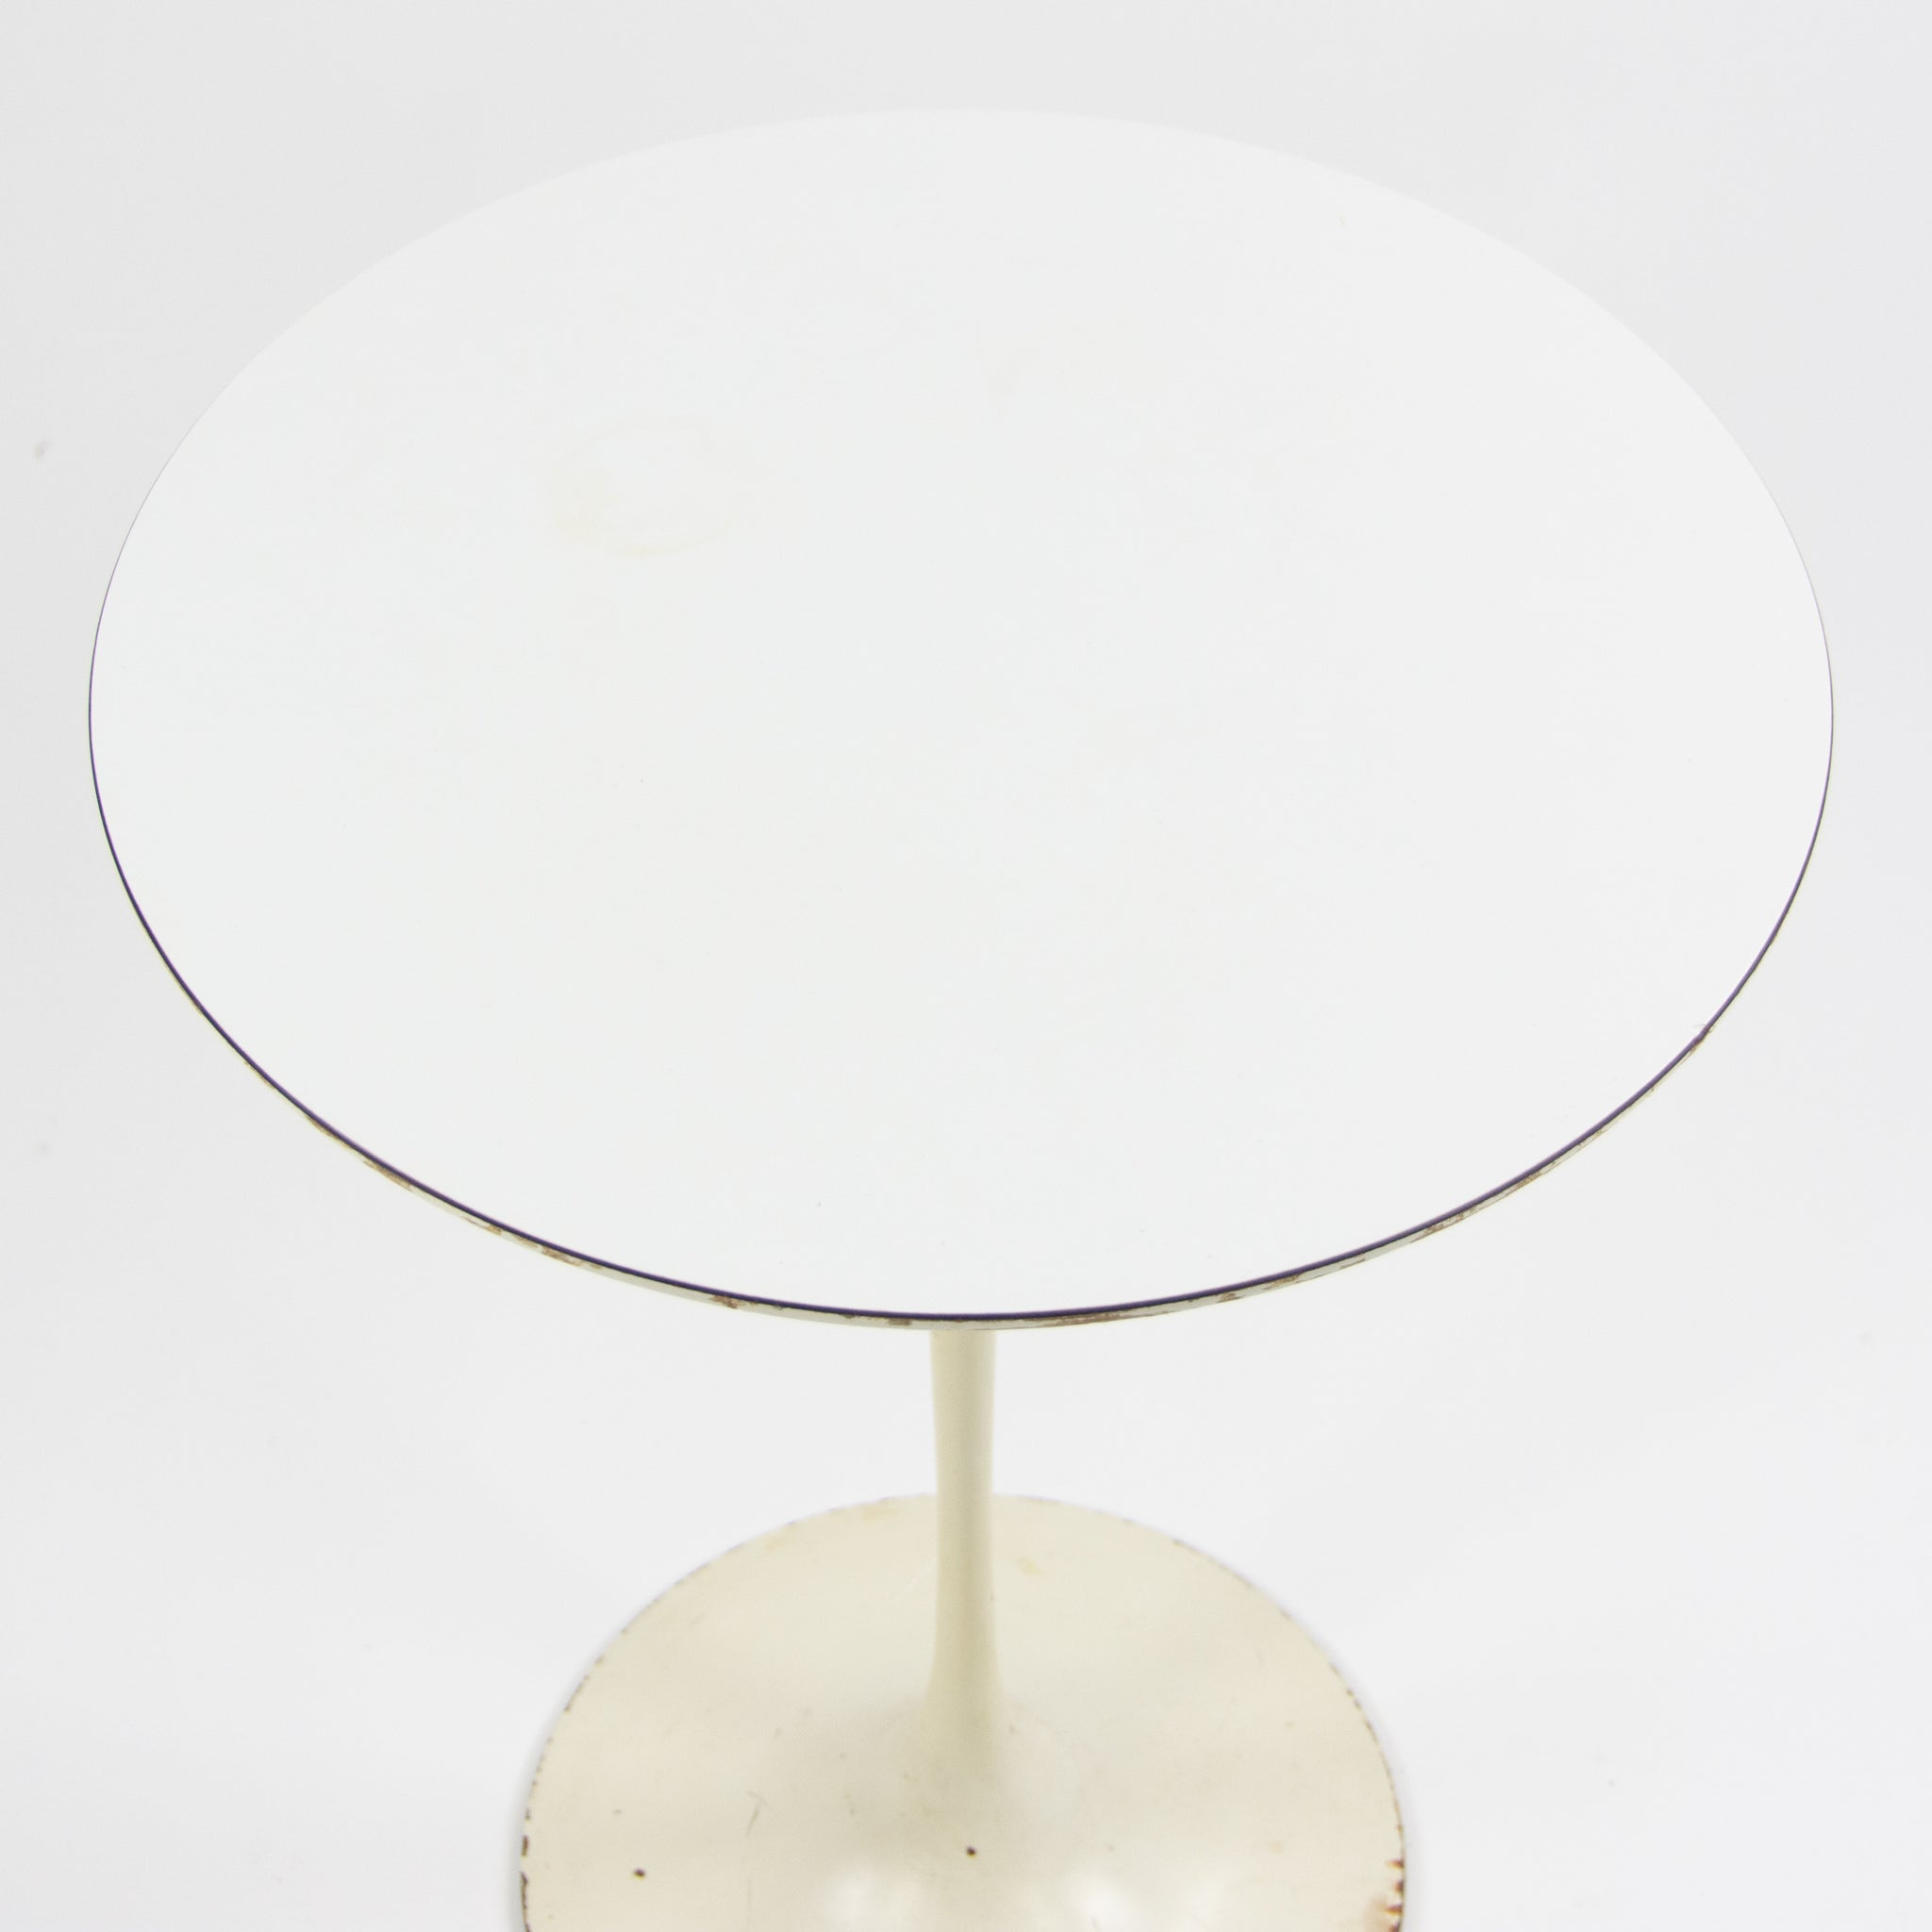 1960's Vintage Eero Saarinen For Knoll 16 Inch Tulip Side Table White Laminate